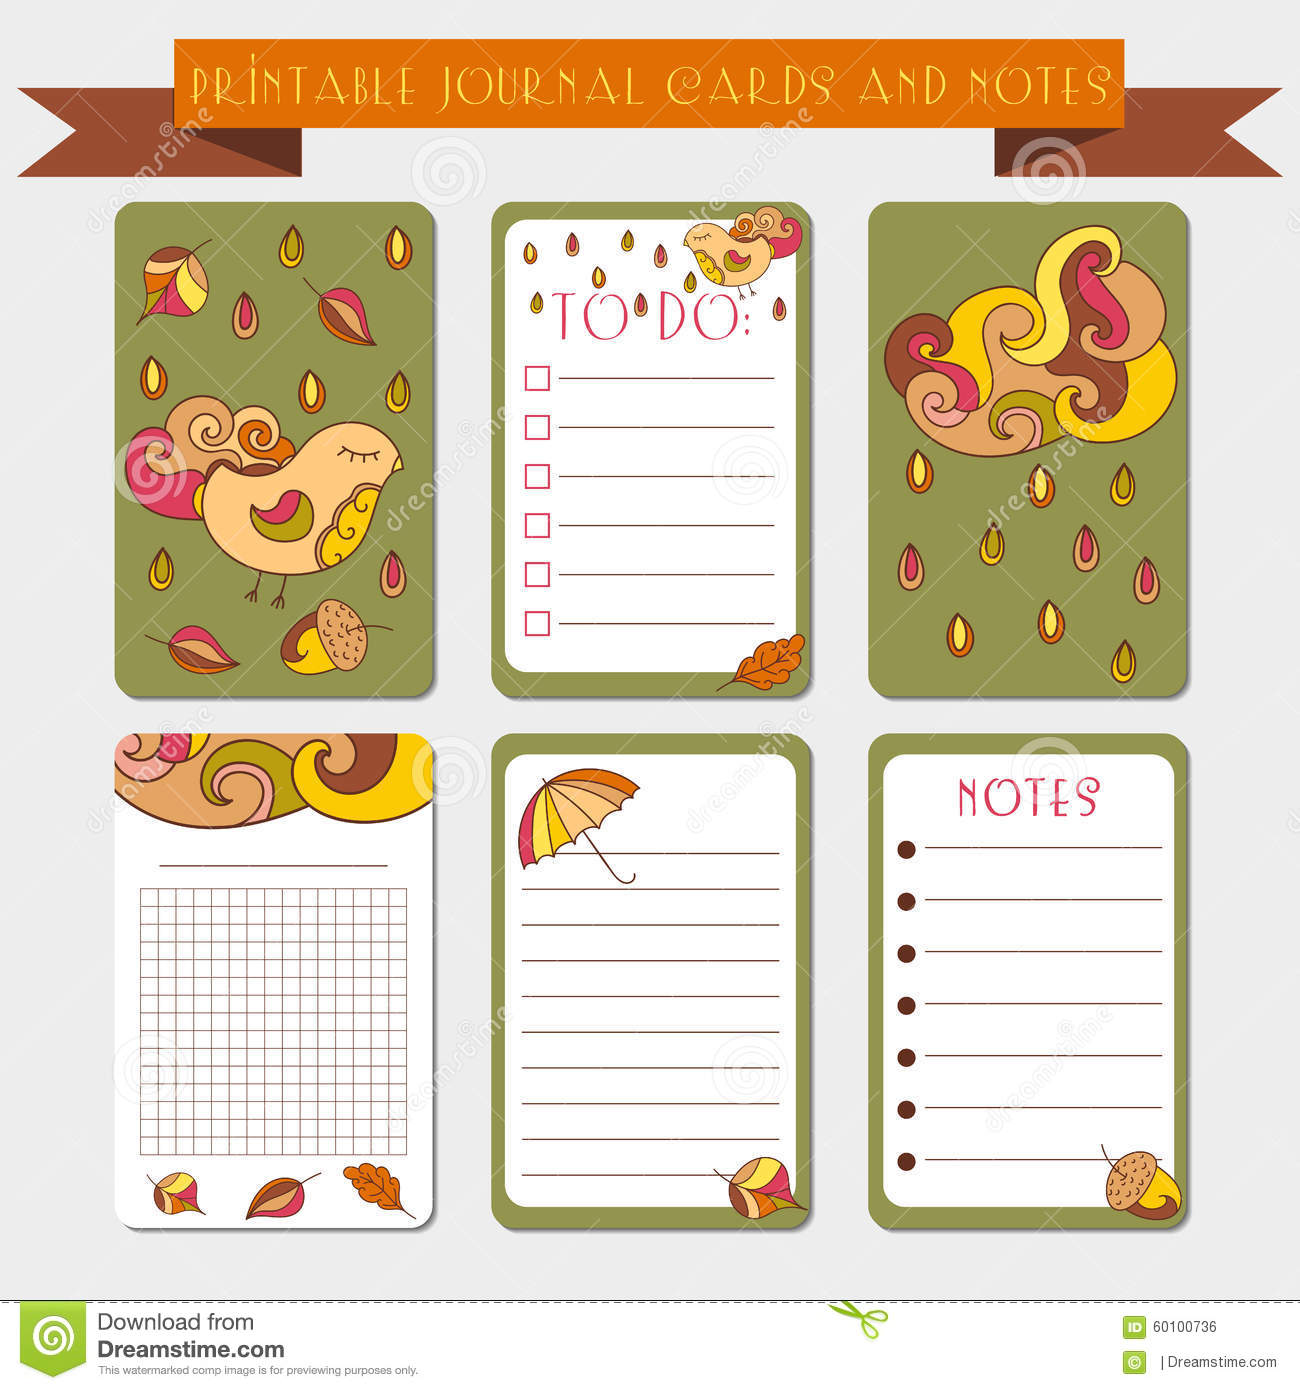 photo regarding Free Printable Journal Cards titled Printable Notes, Magazine Playing cards With Autmun Examples